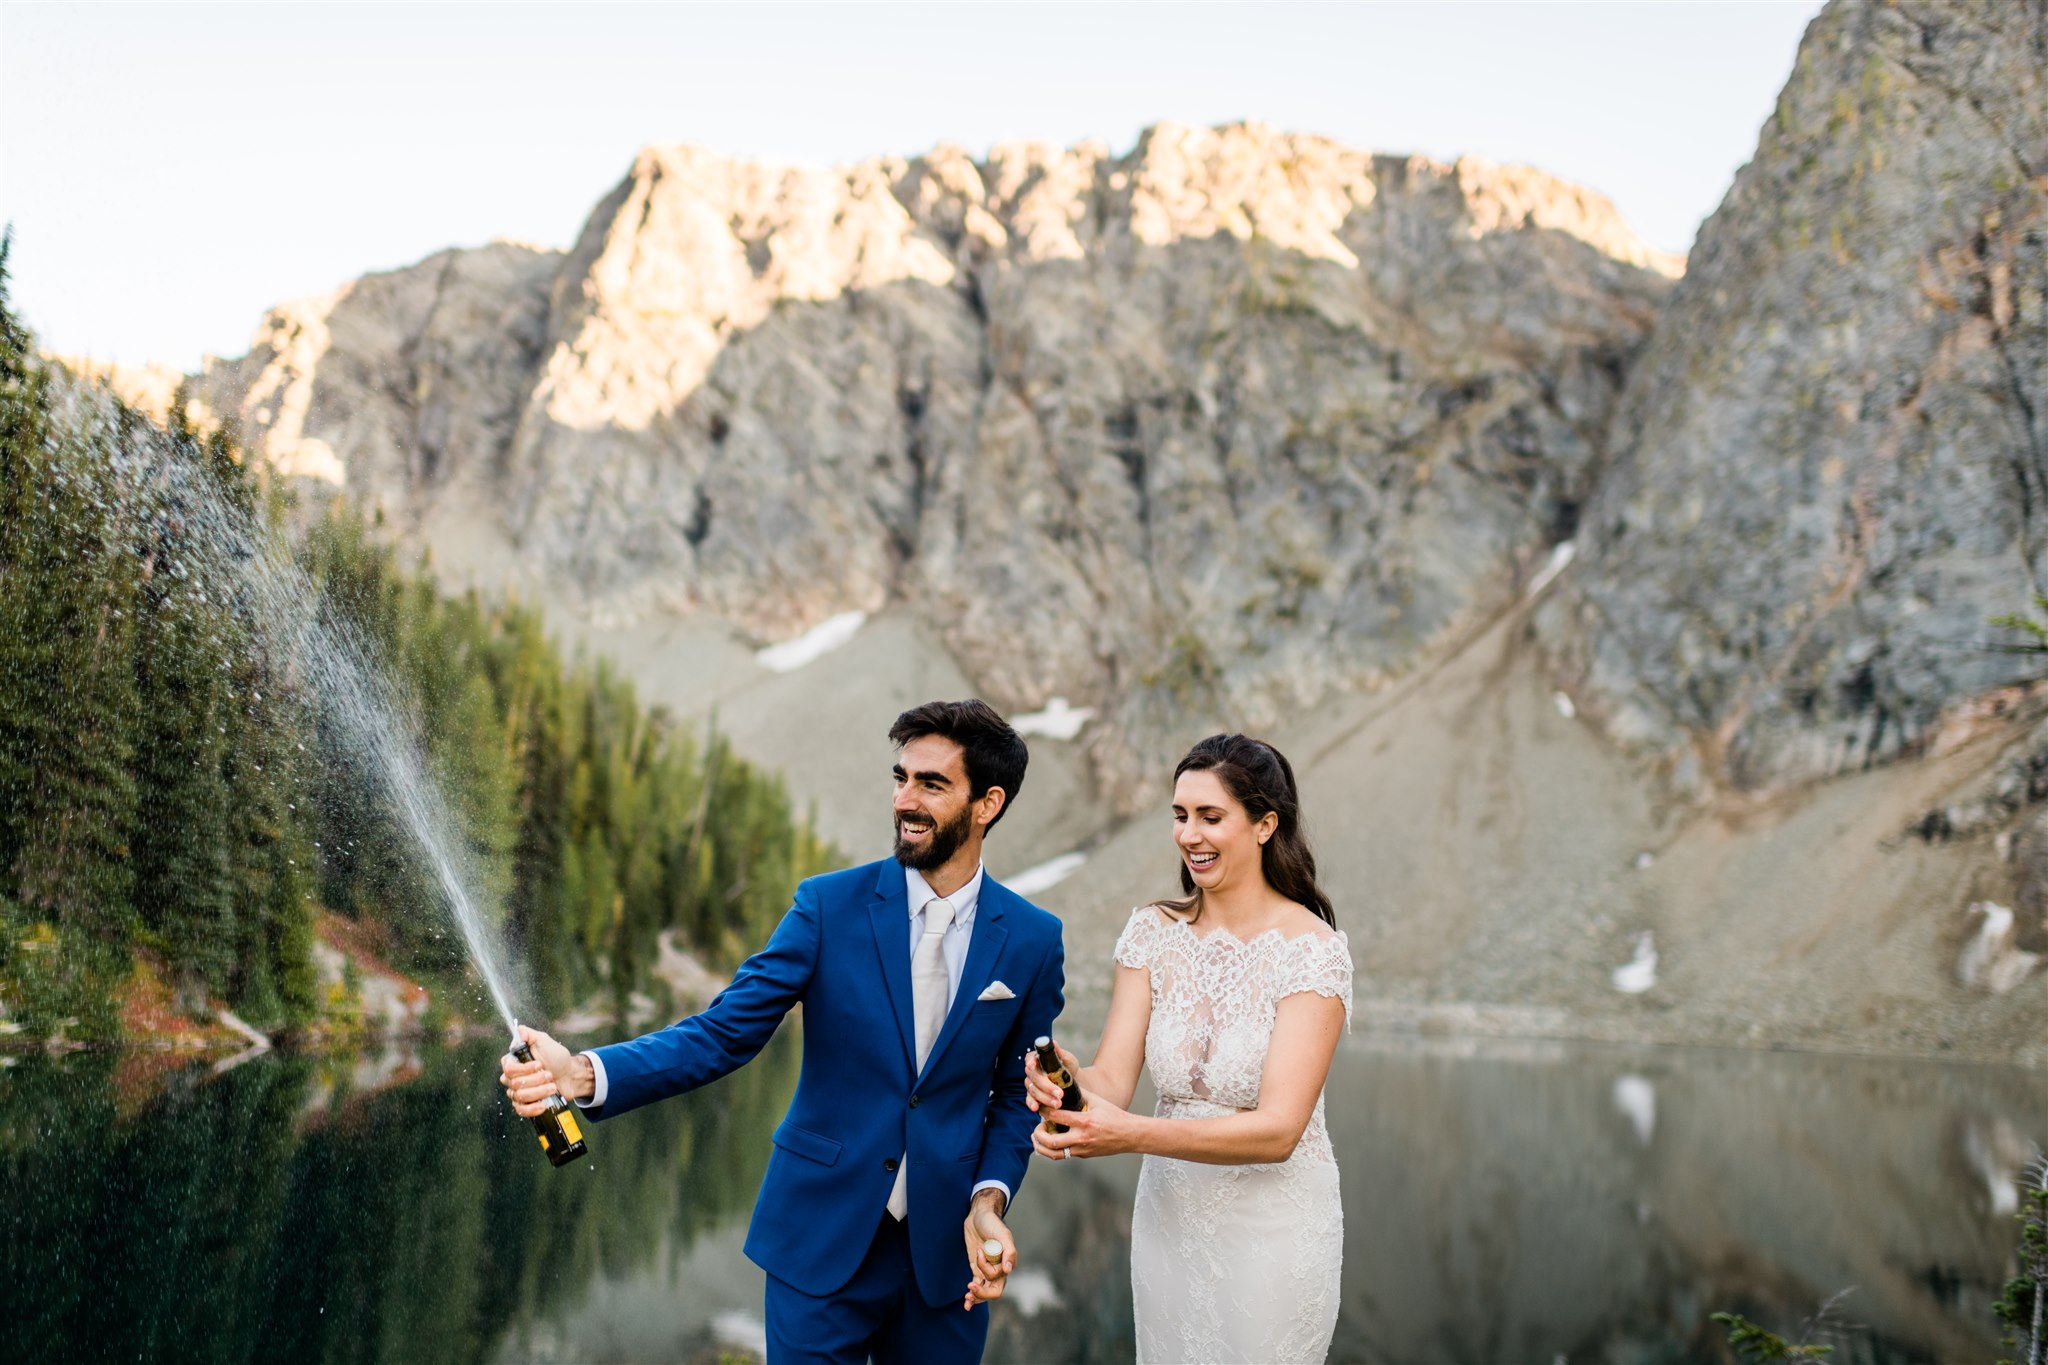 North Cascades adventure wedding, hiking wedding champagne pop toast. Image by Forthright Photo.